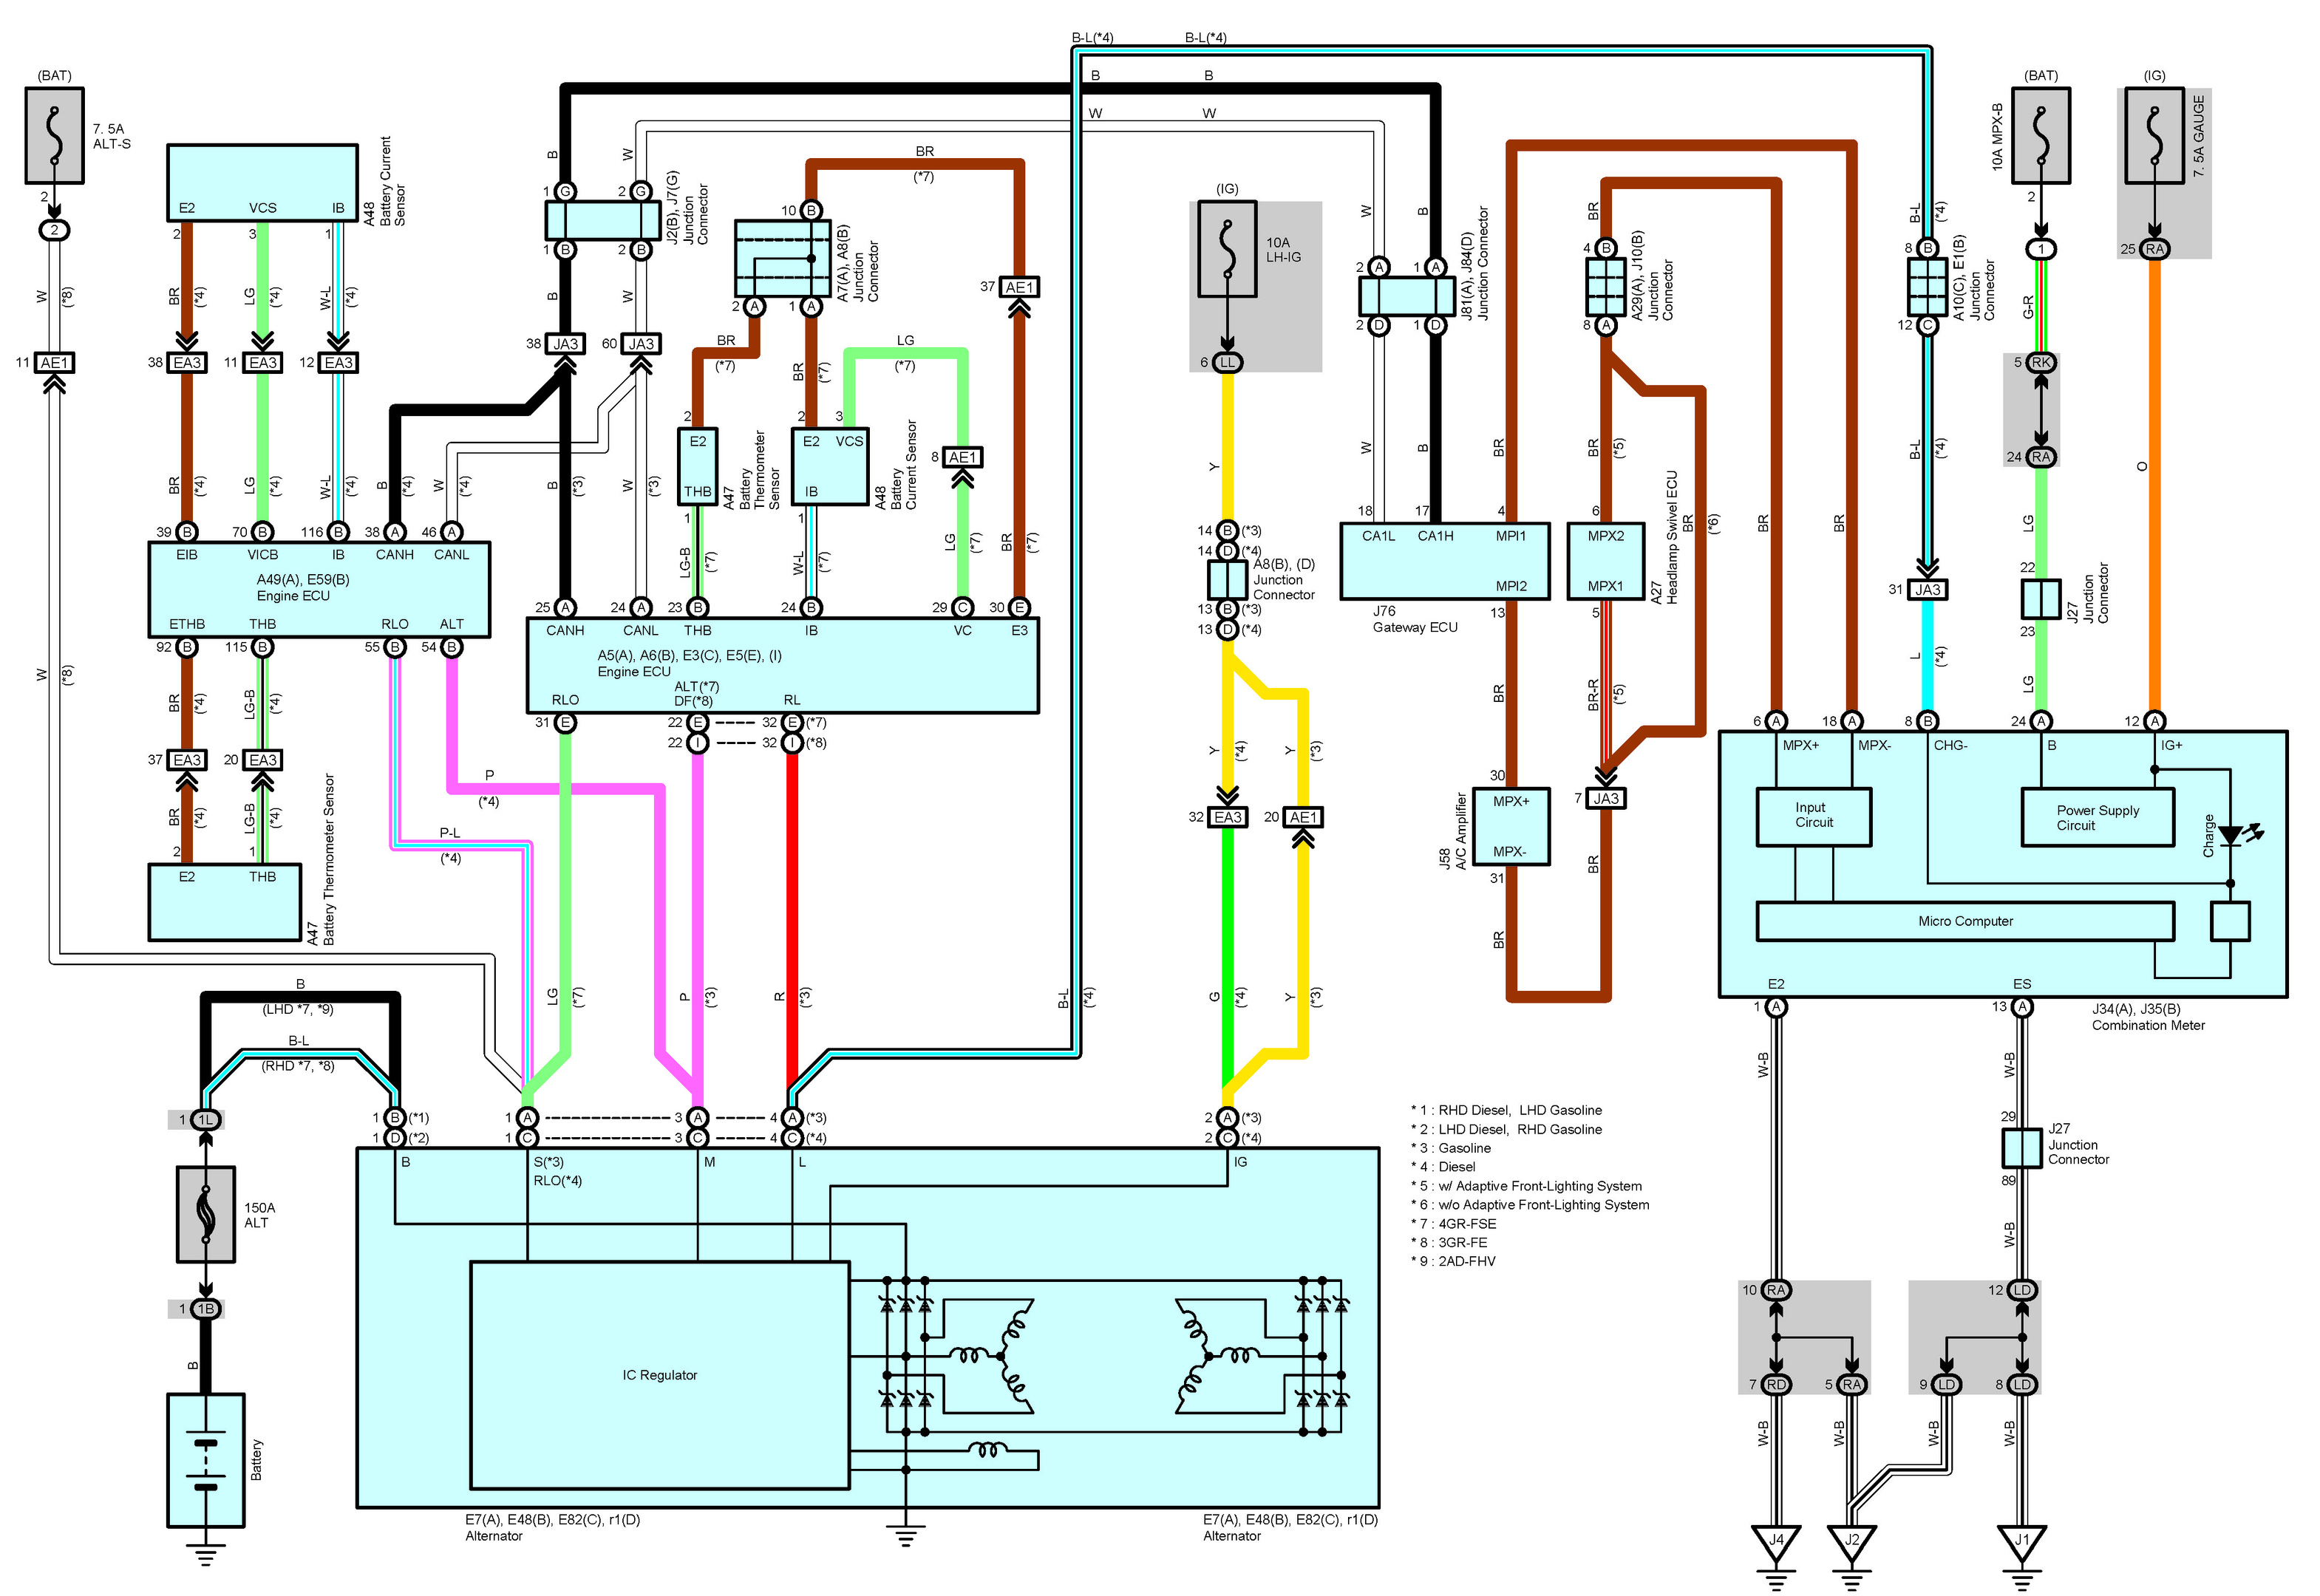 [DIAGRAM_38ZD]  FBA56 2007 Lexus Is 250 Wiring Diagram | Wiring Resources | Lexus Is200 Wiring Diagrams Pdf |  | Wiring Resources